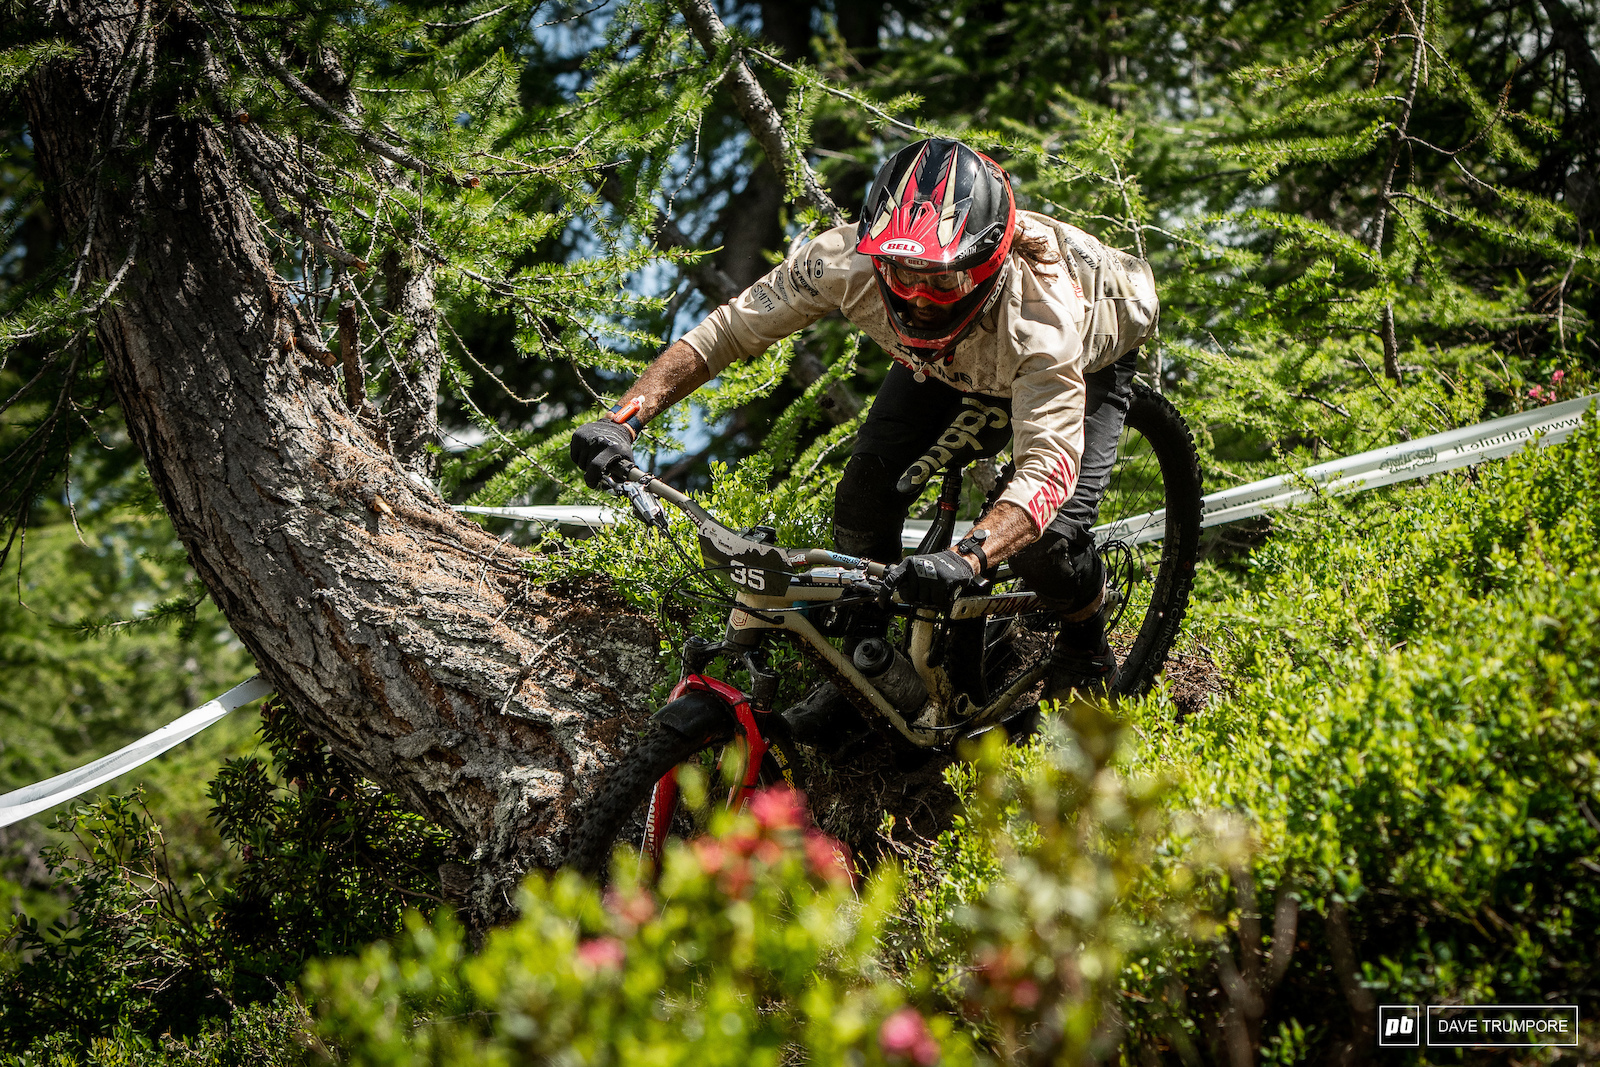 What a rider for Yoann Barelli to take 8th while only racing a part time EWS schedule this season. Expect good things next round on his home turf in Whistler.